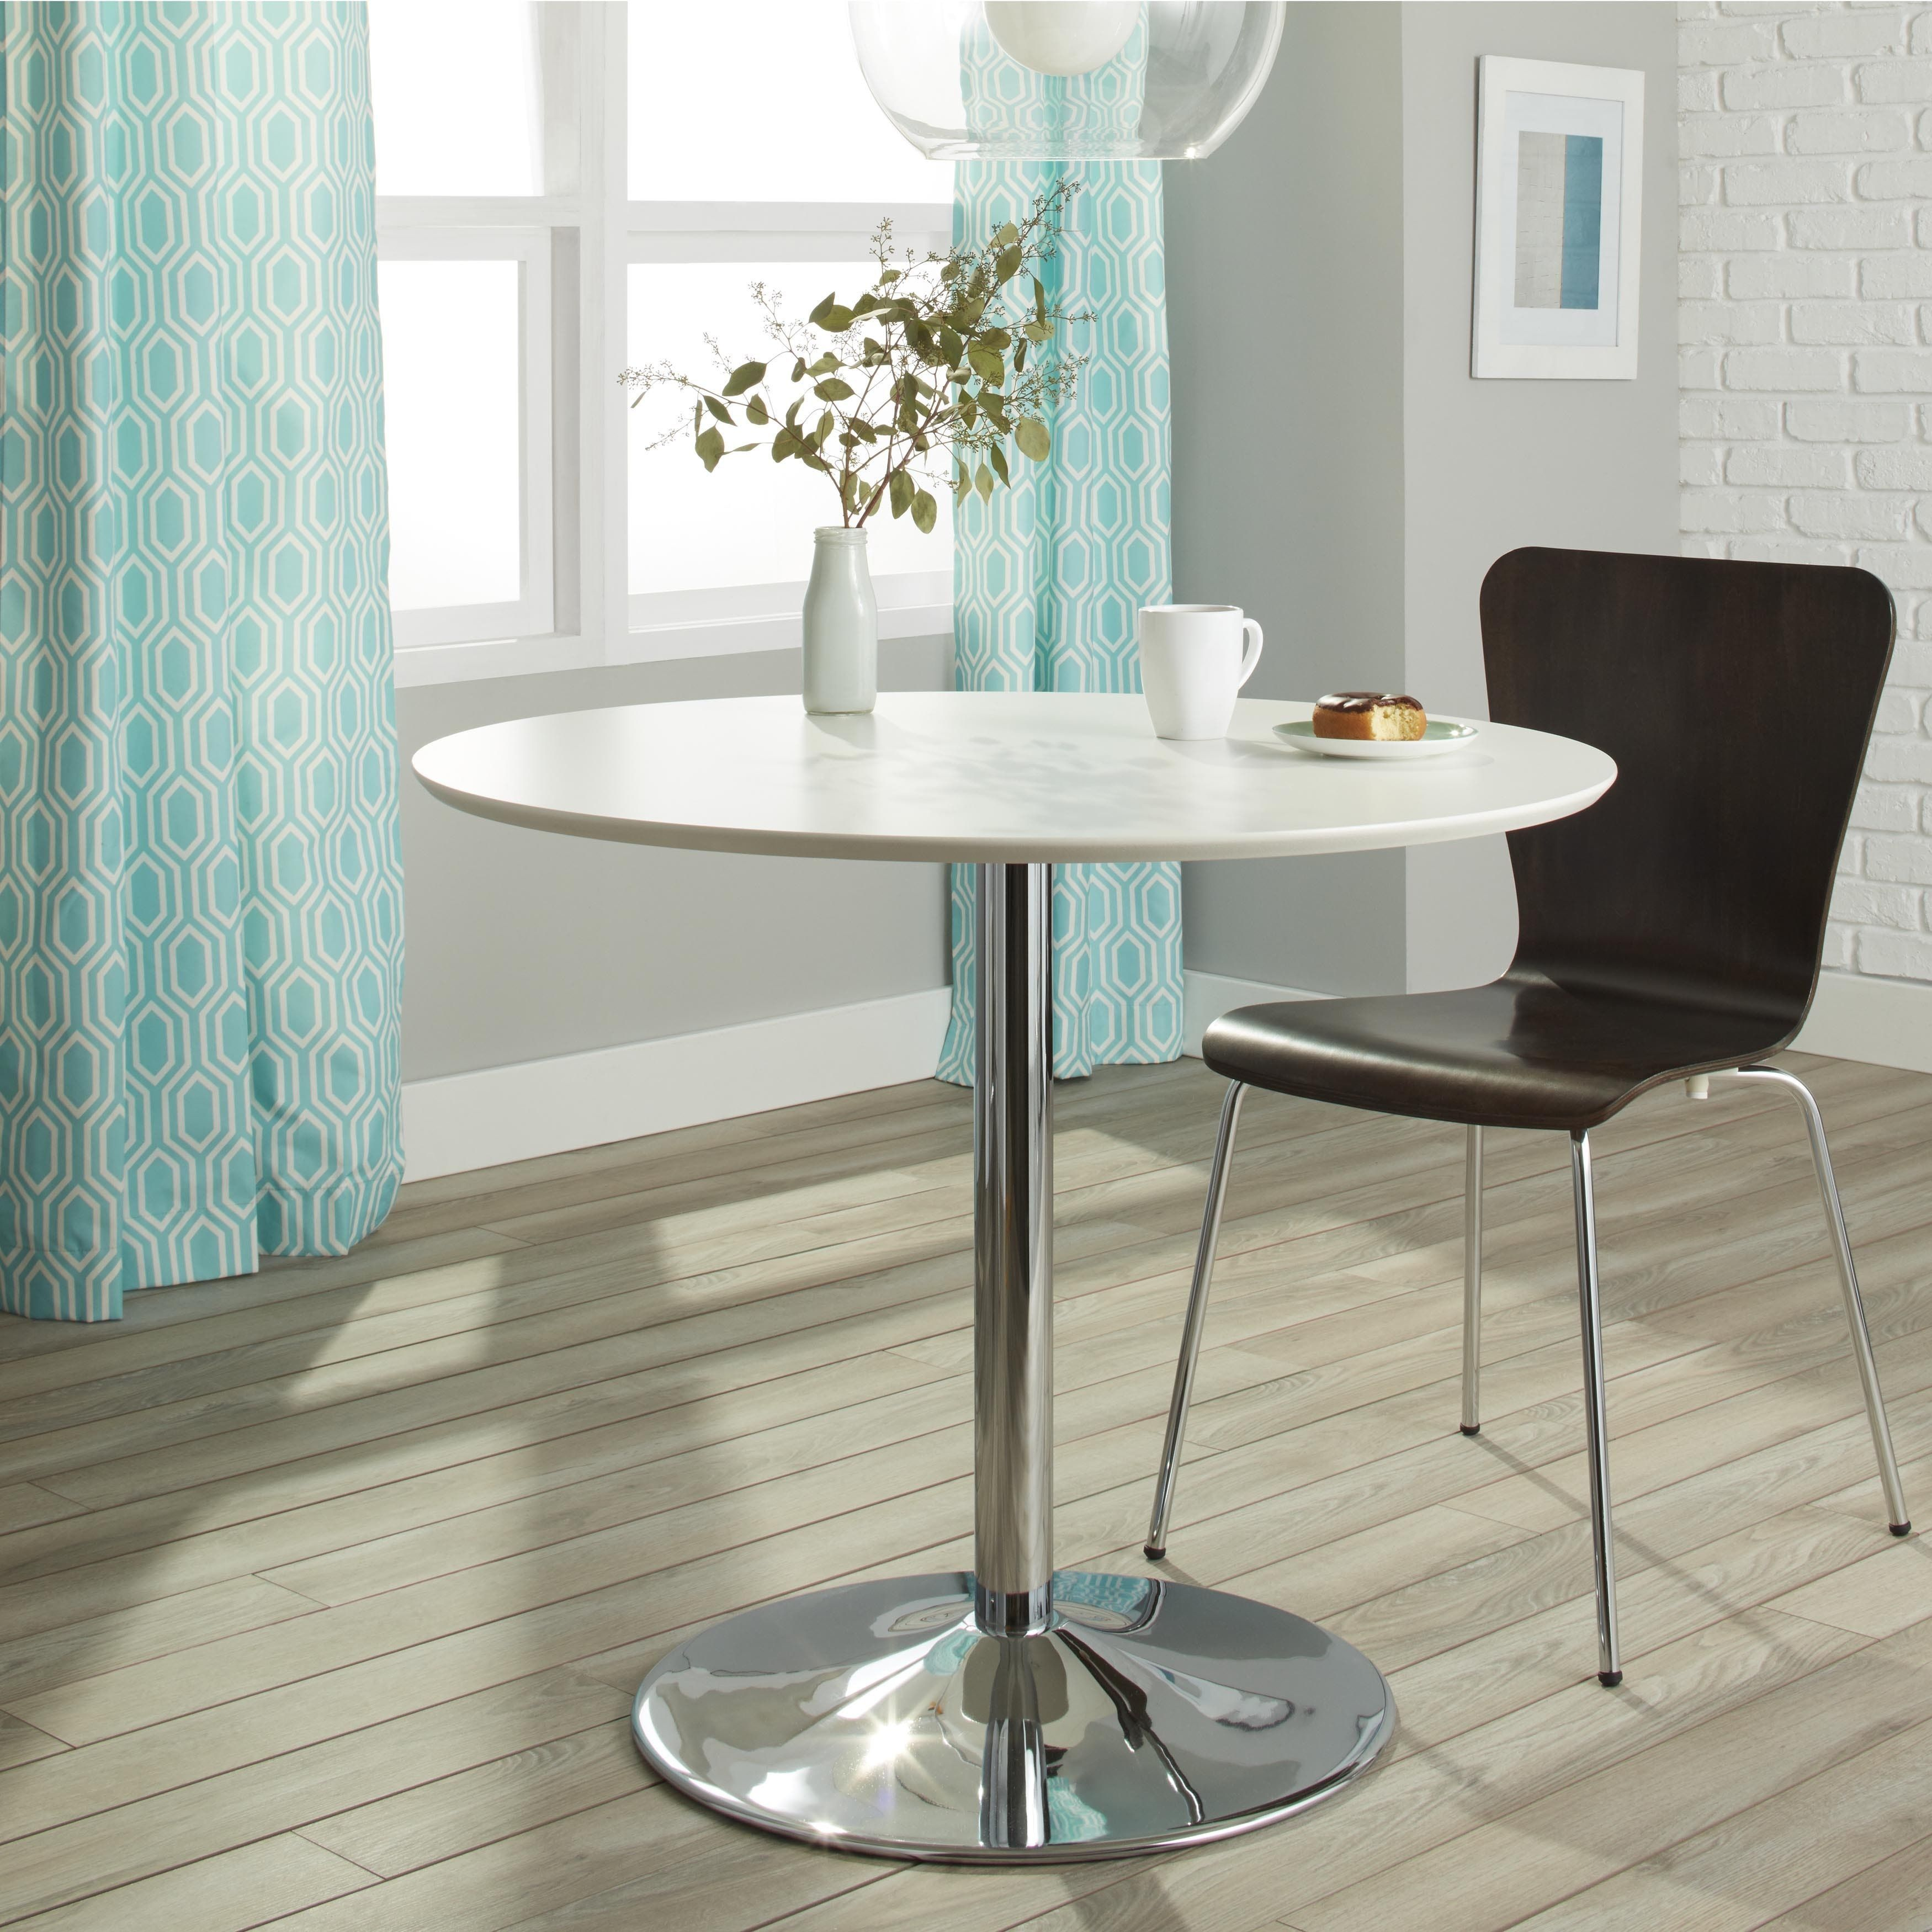 Carson Carrington Klemens Round Dining Table Round Dining Table